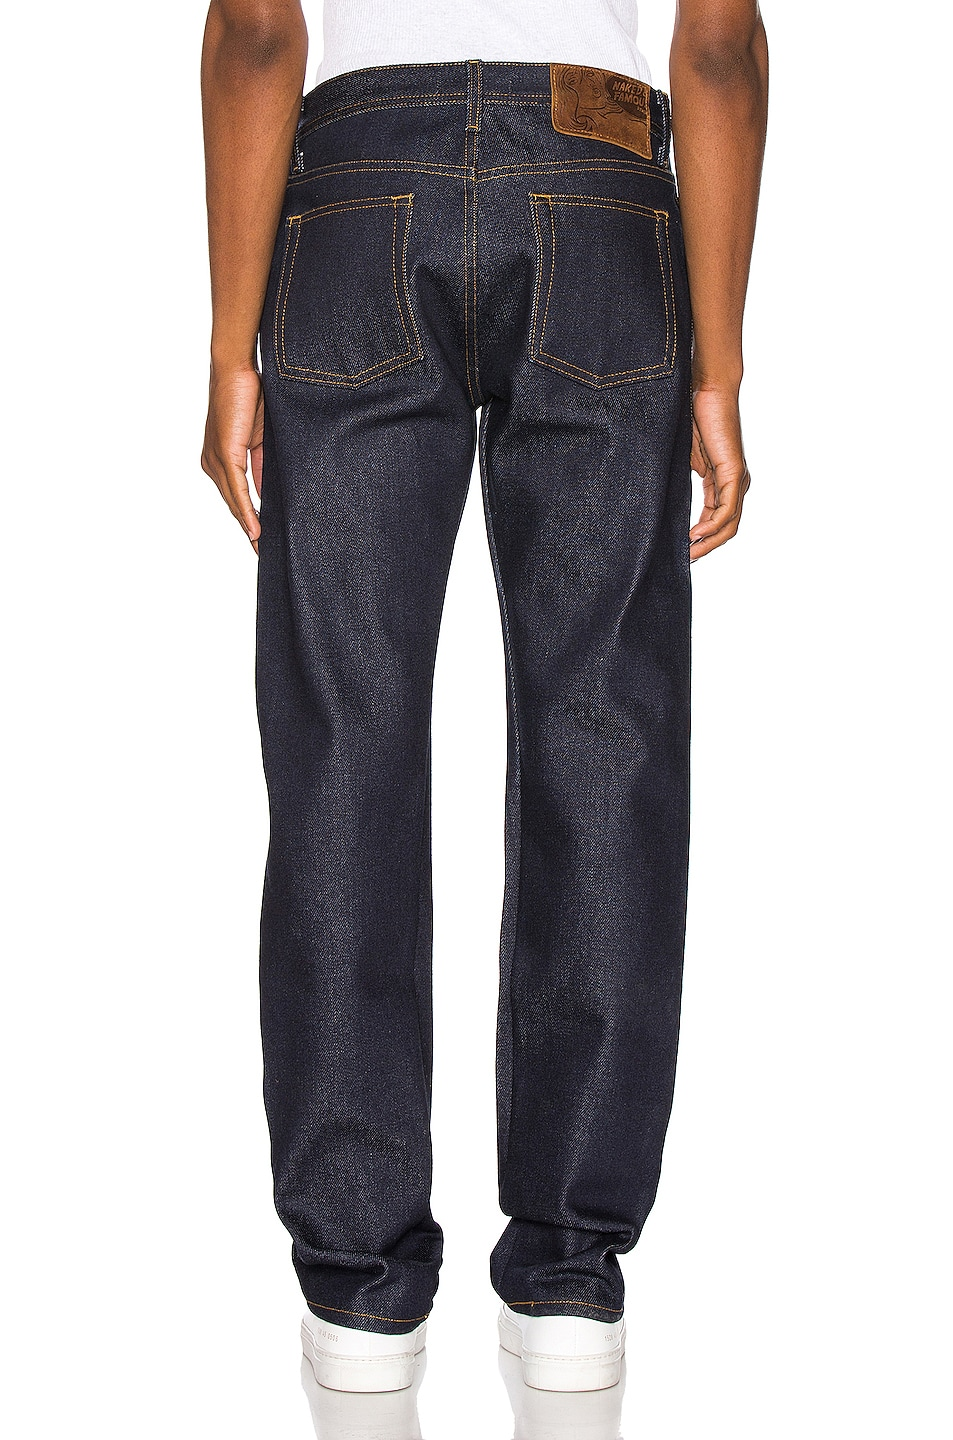 Image 3 of Naked & Famous Denim Weird Guy Jeans in Elephant 8 Supima Soft Selvedge